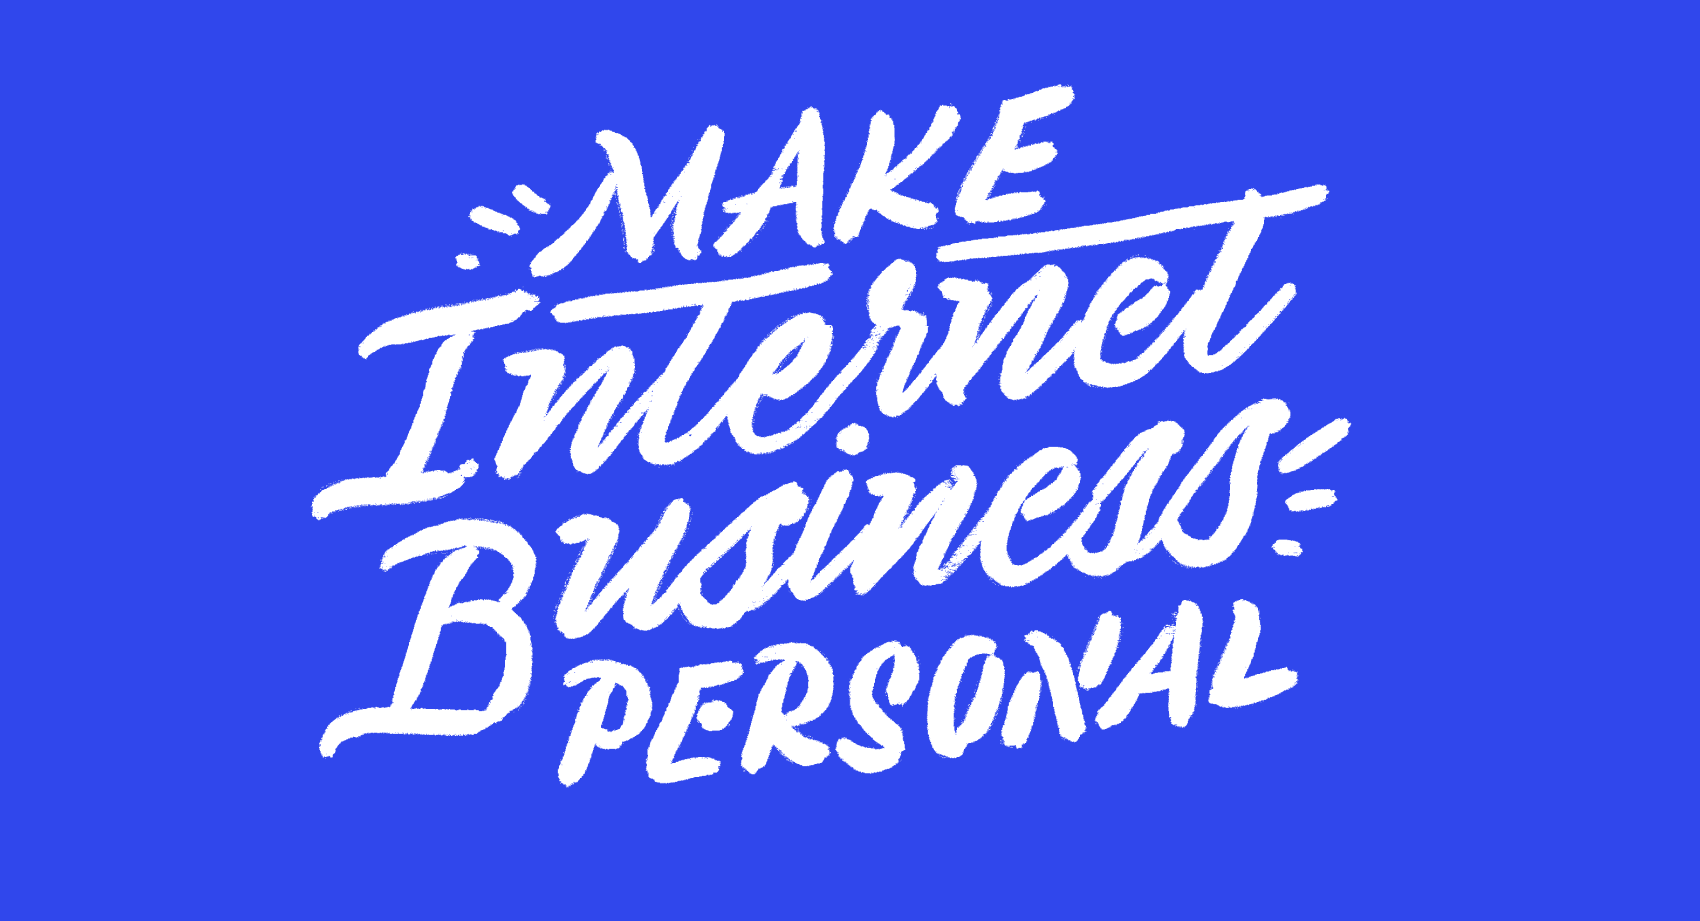 Make internet business personal